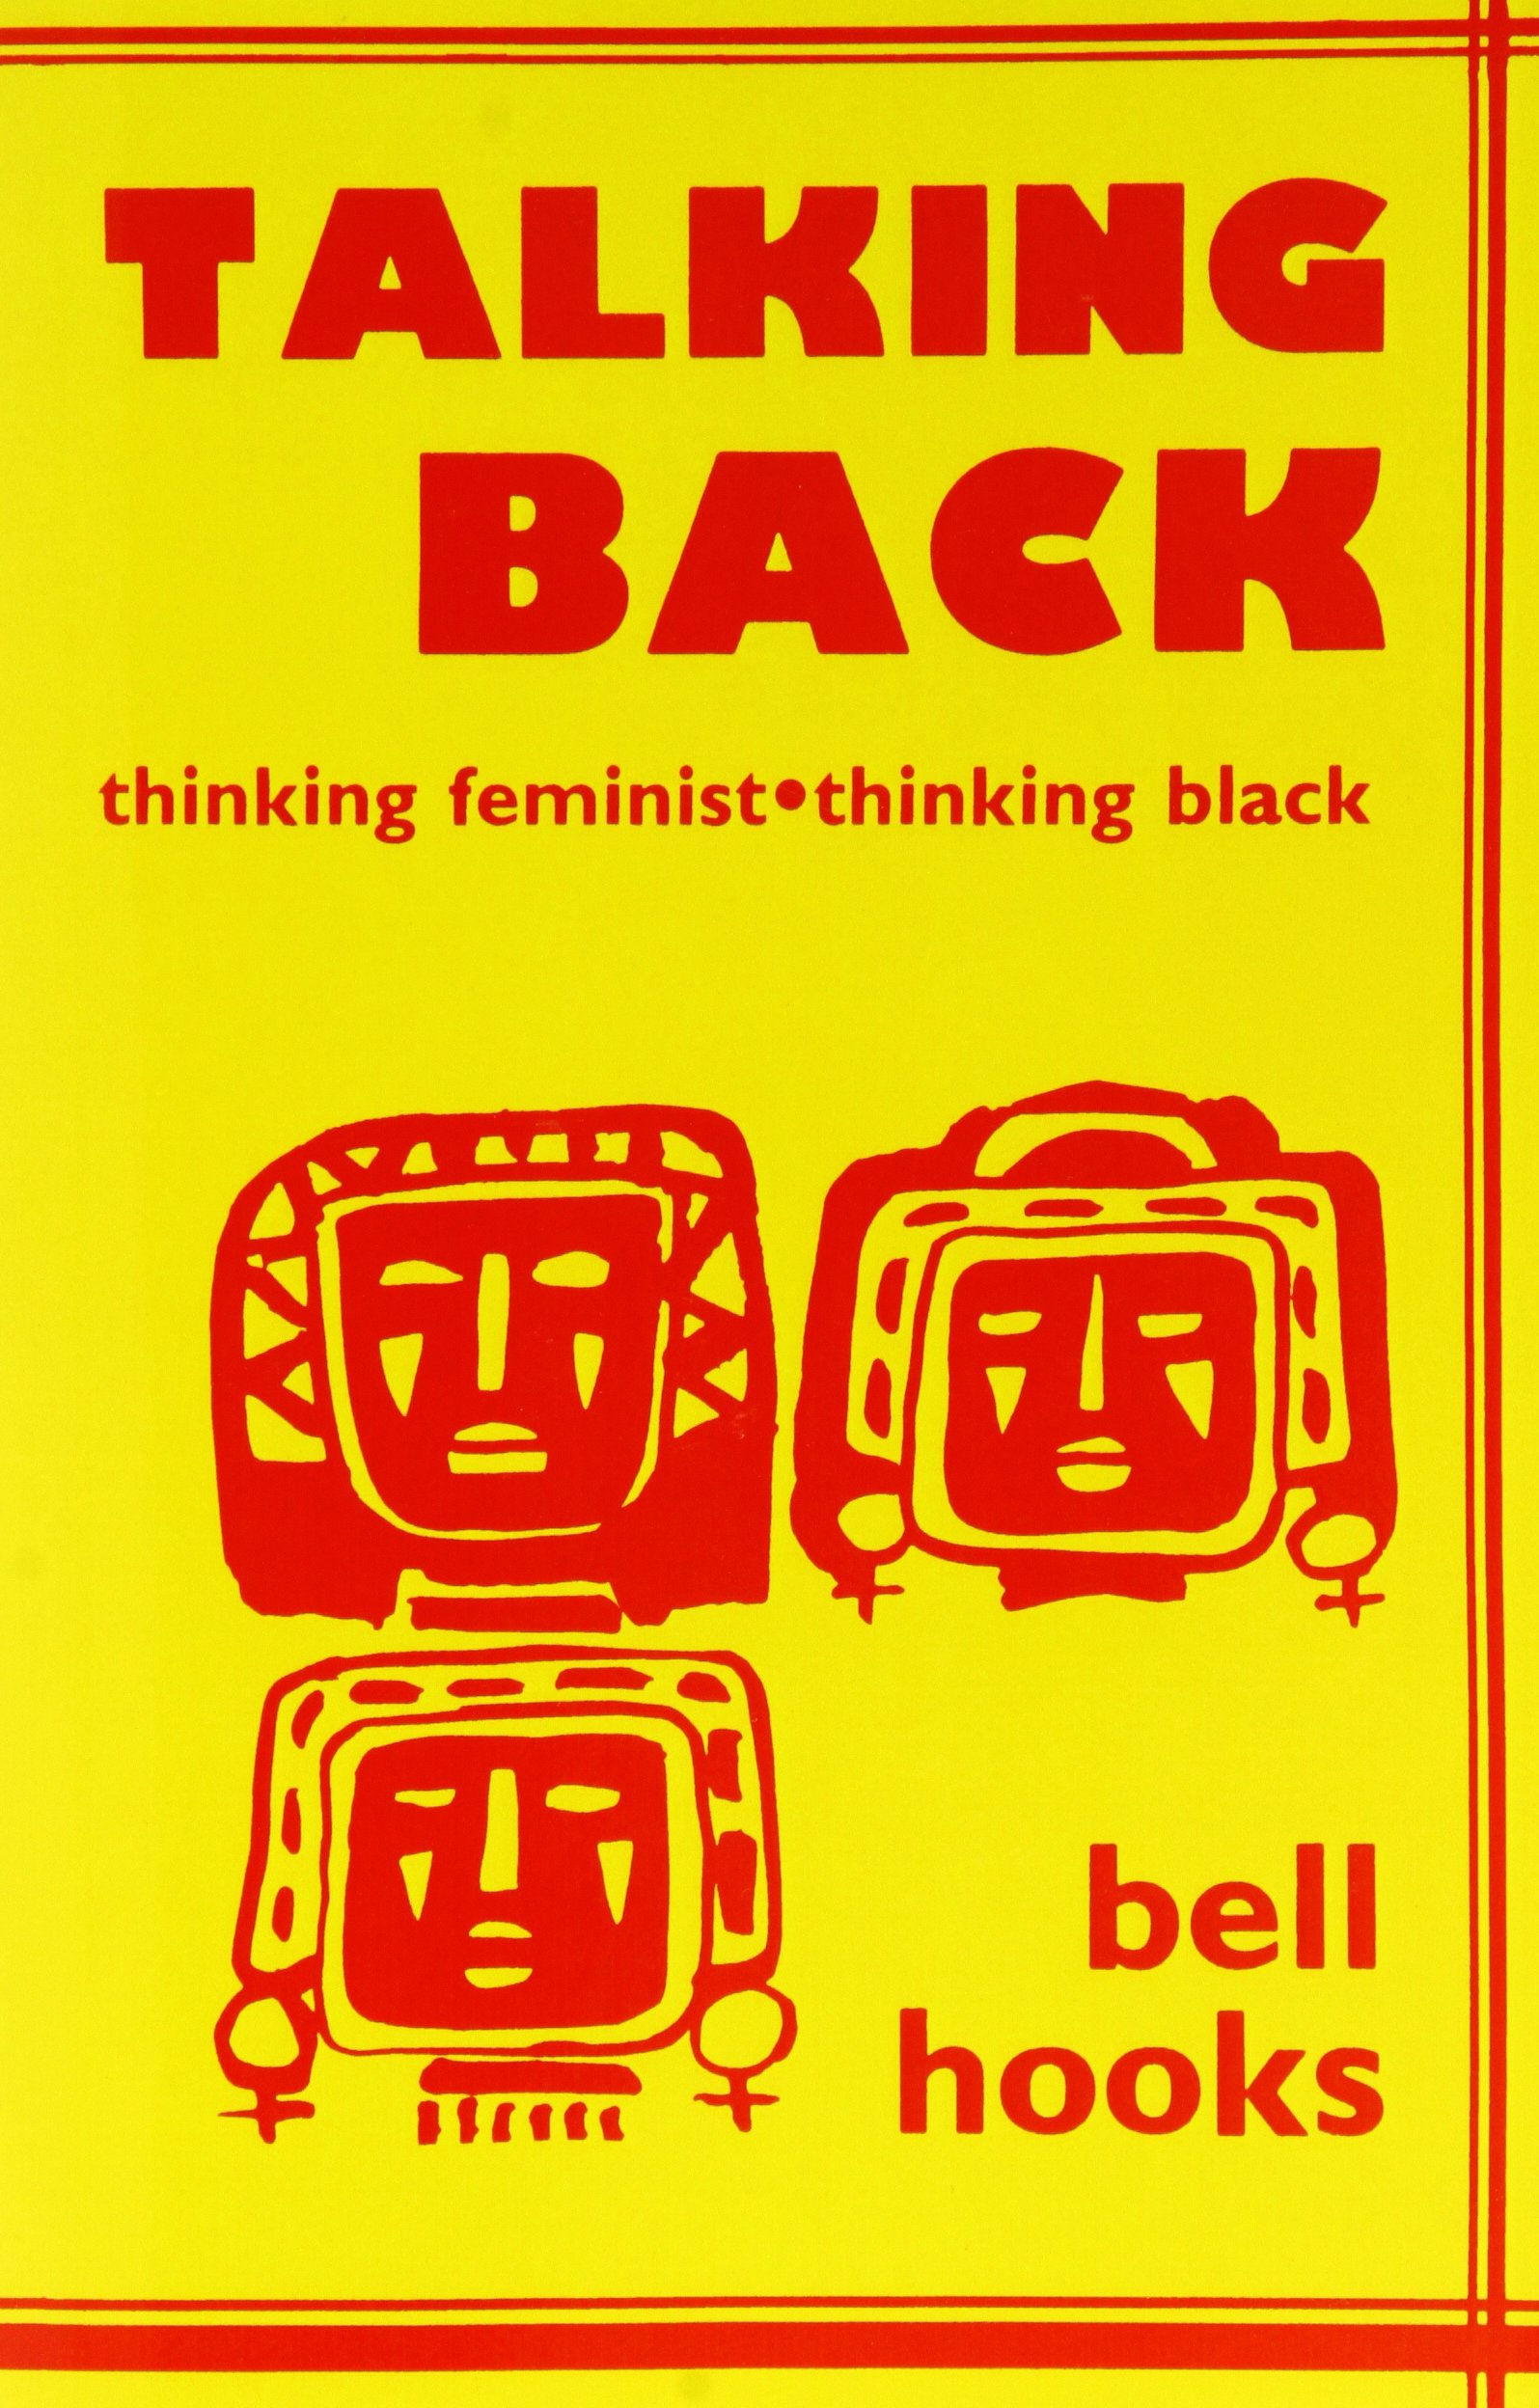 talking back thinking feminist thinking black bell hooks talking back thinking feminist thinking black bell hooks 9780921284093 books ca